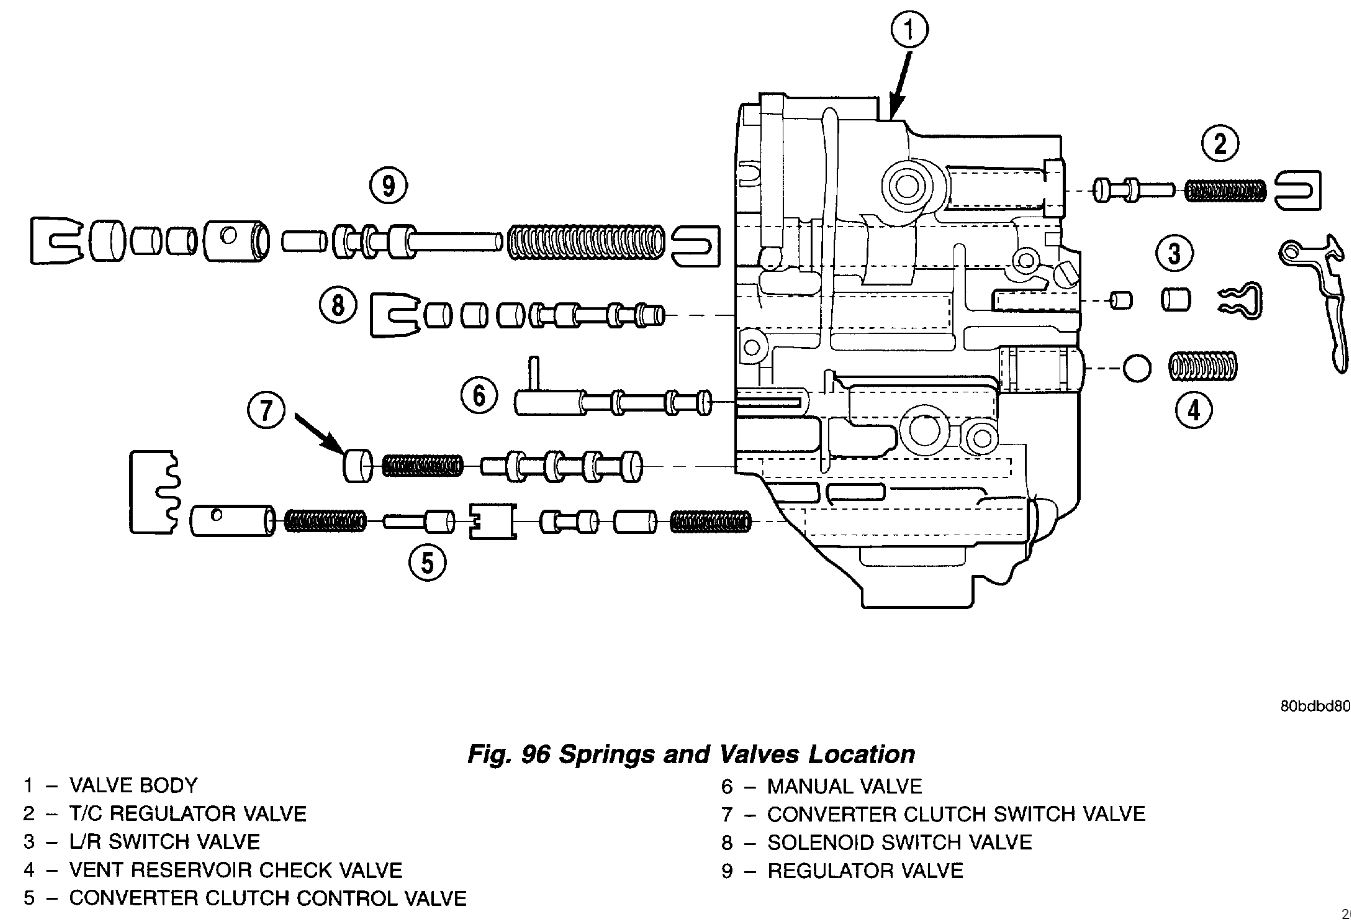 Need Diagram Of Valve Body Replaced Neutral Safety Switch